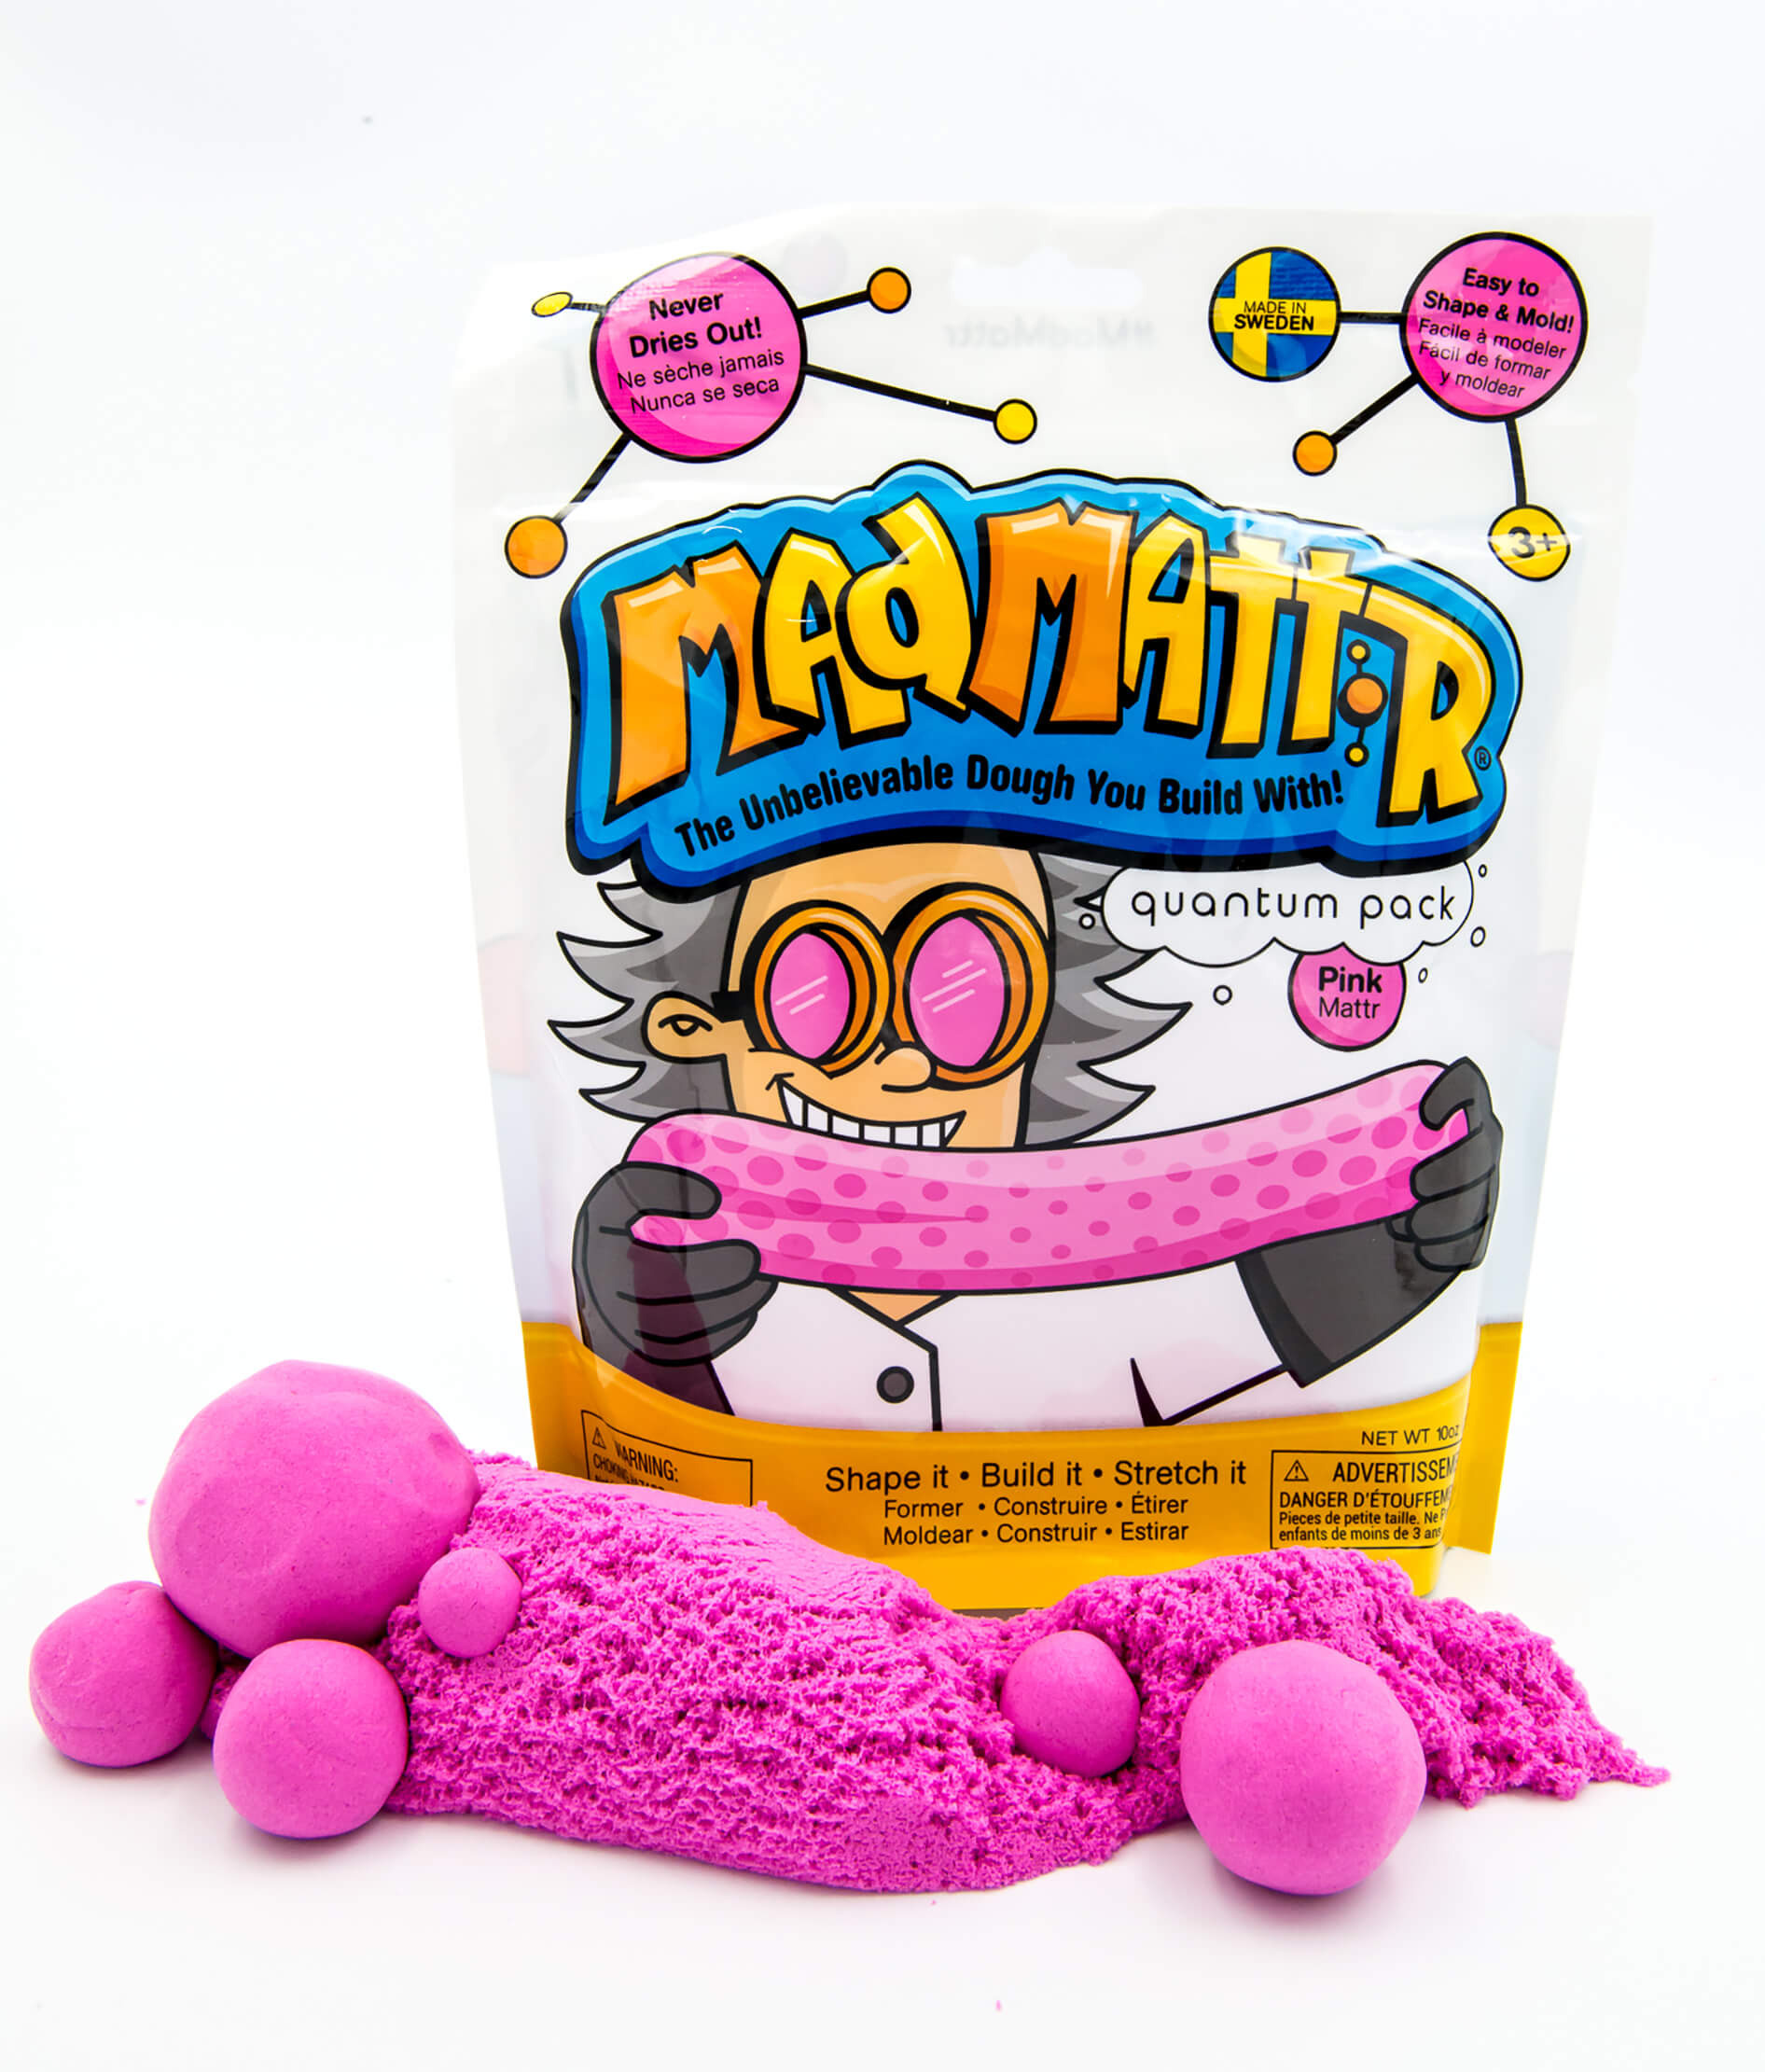 IMAGE 8 - Mad Mattr Quantum Pack - Pink with MM.jpg